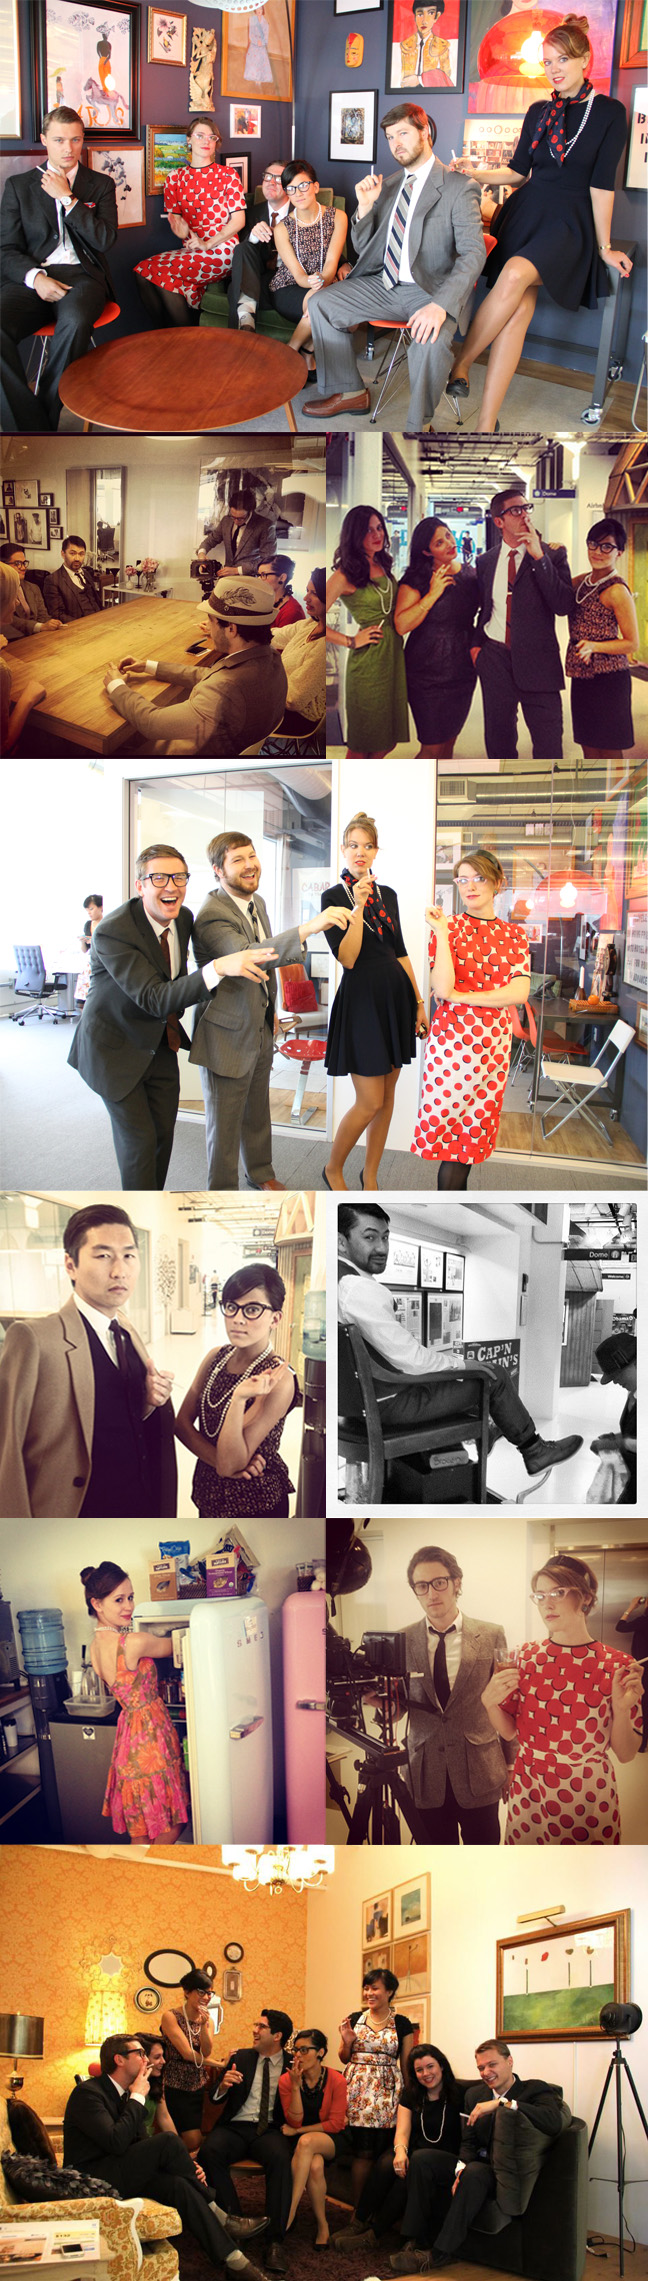 madmen at airbnb hq